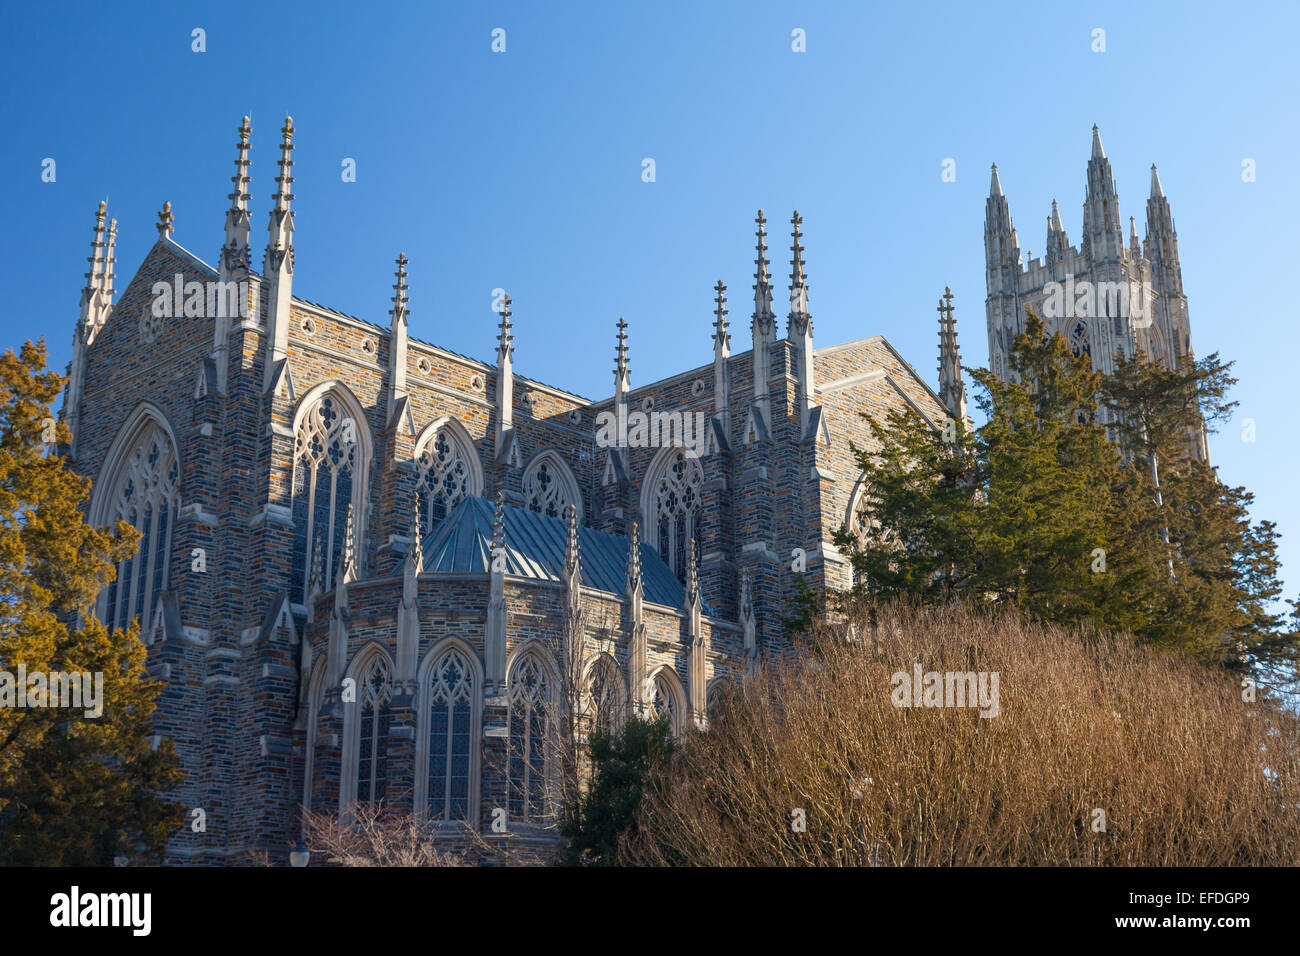 Back and side view of Duke Chapel, Durham, North Carolina - Stock Image